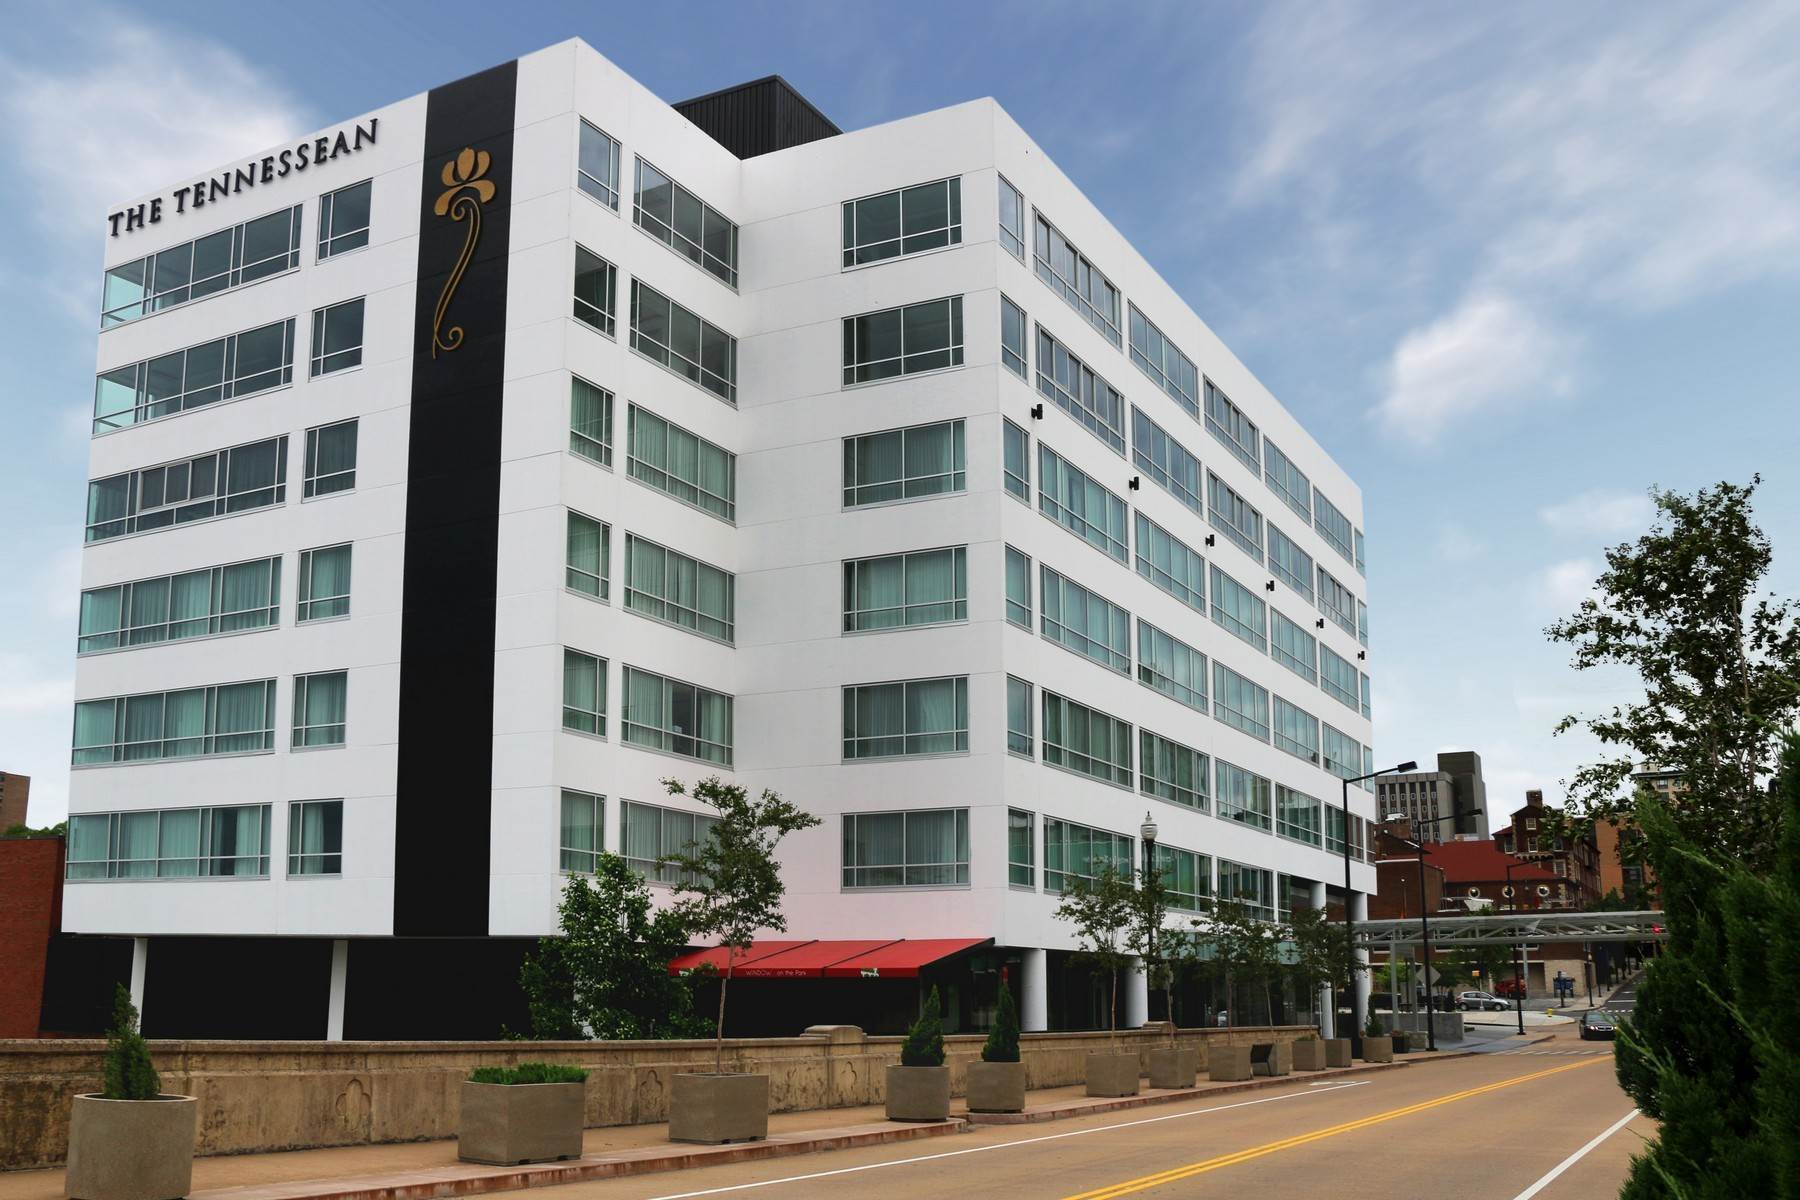 18. Condominiums for Sale at The Tennessean Residences 531 Henley Street, #701 Knoxville, Tennessee 37902 United States